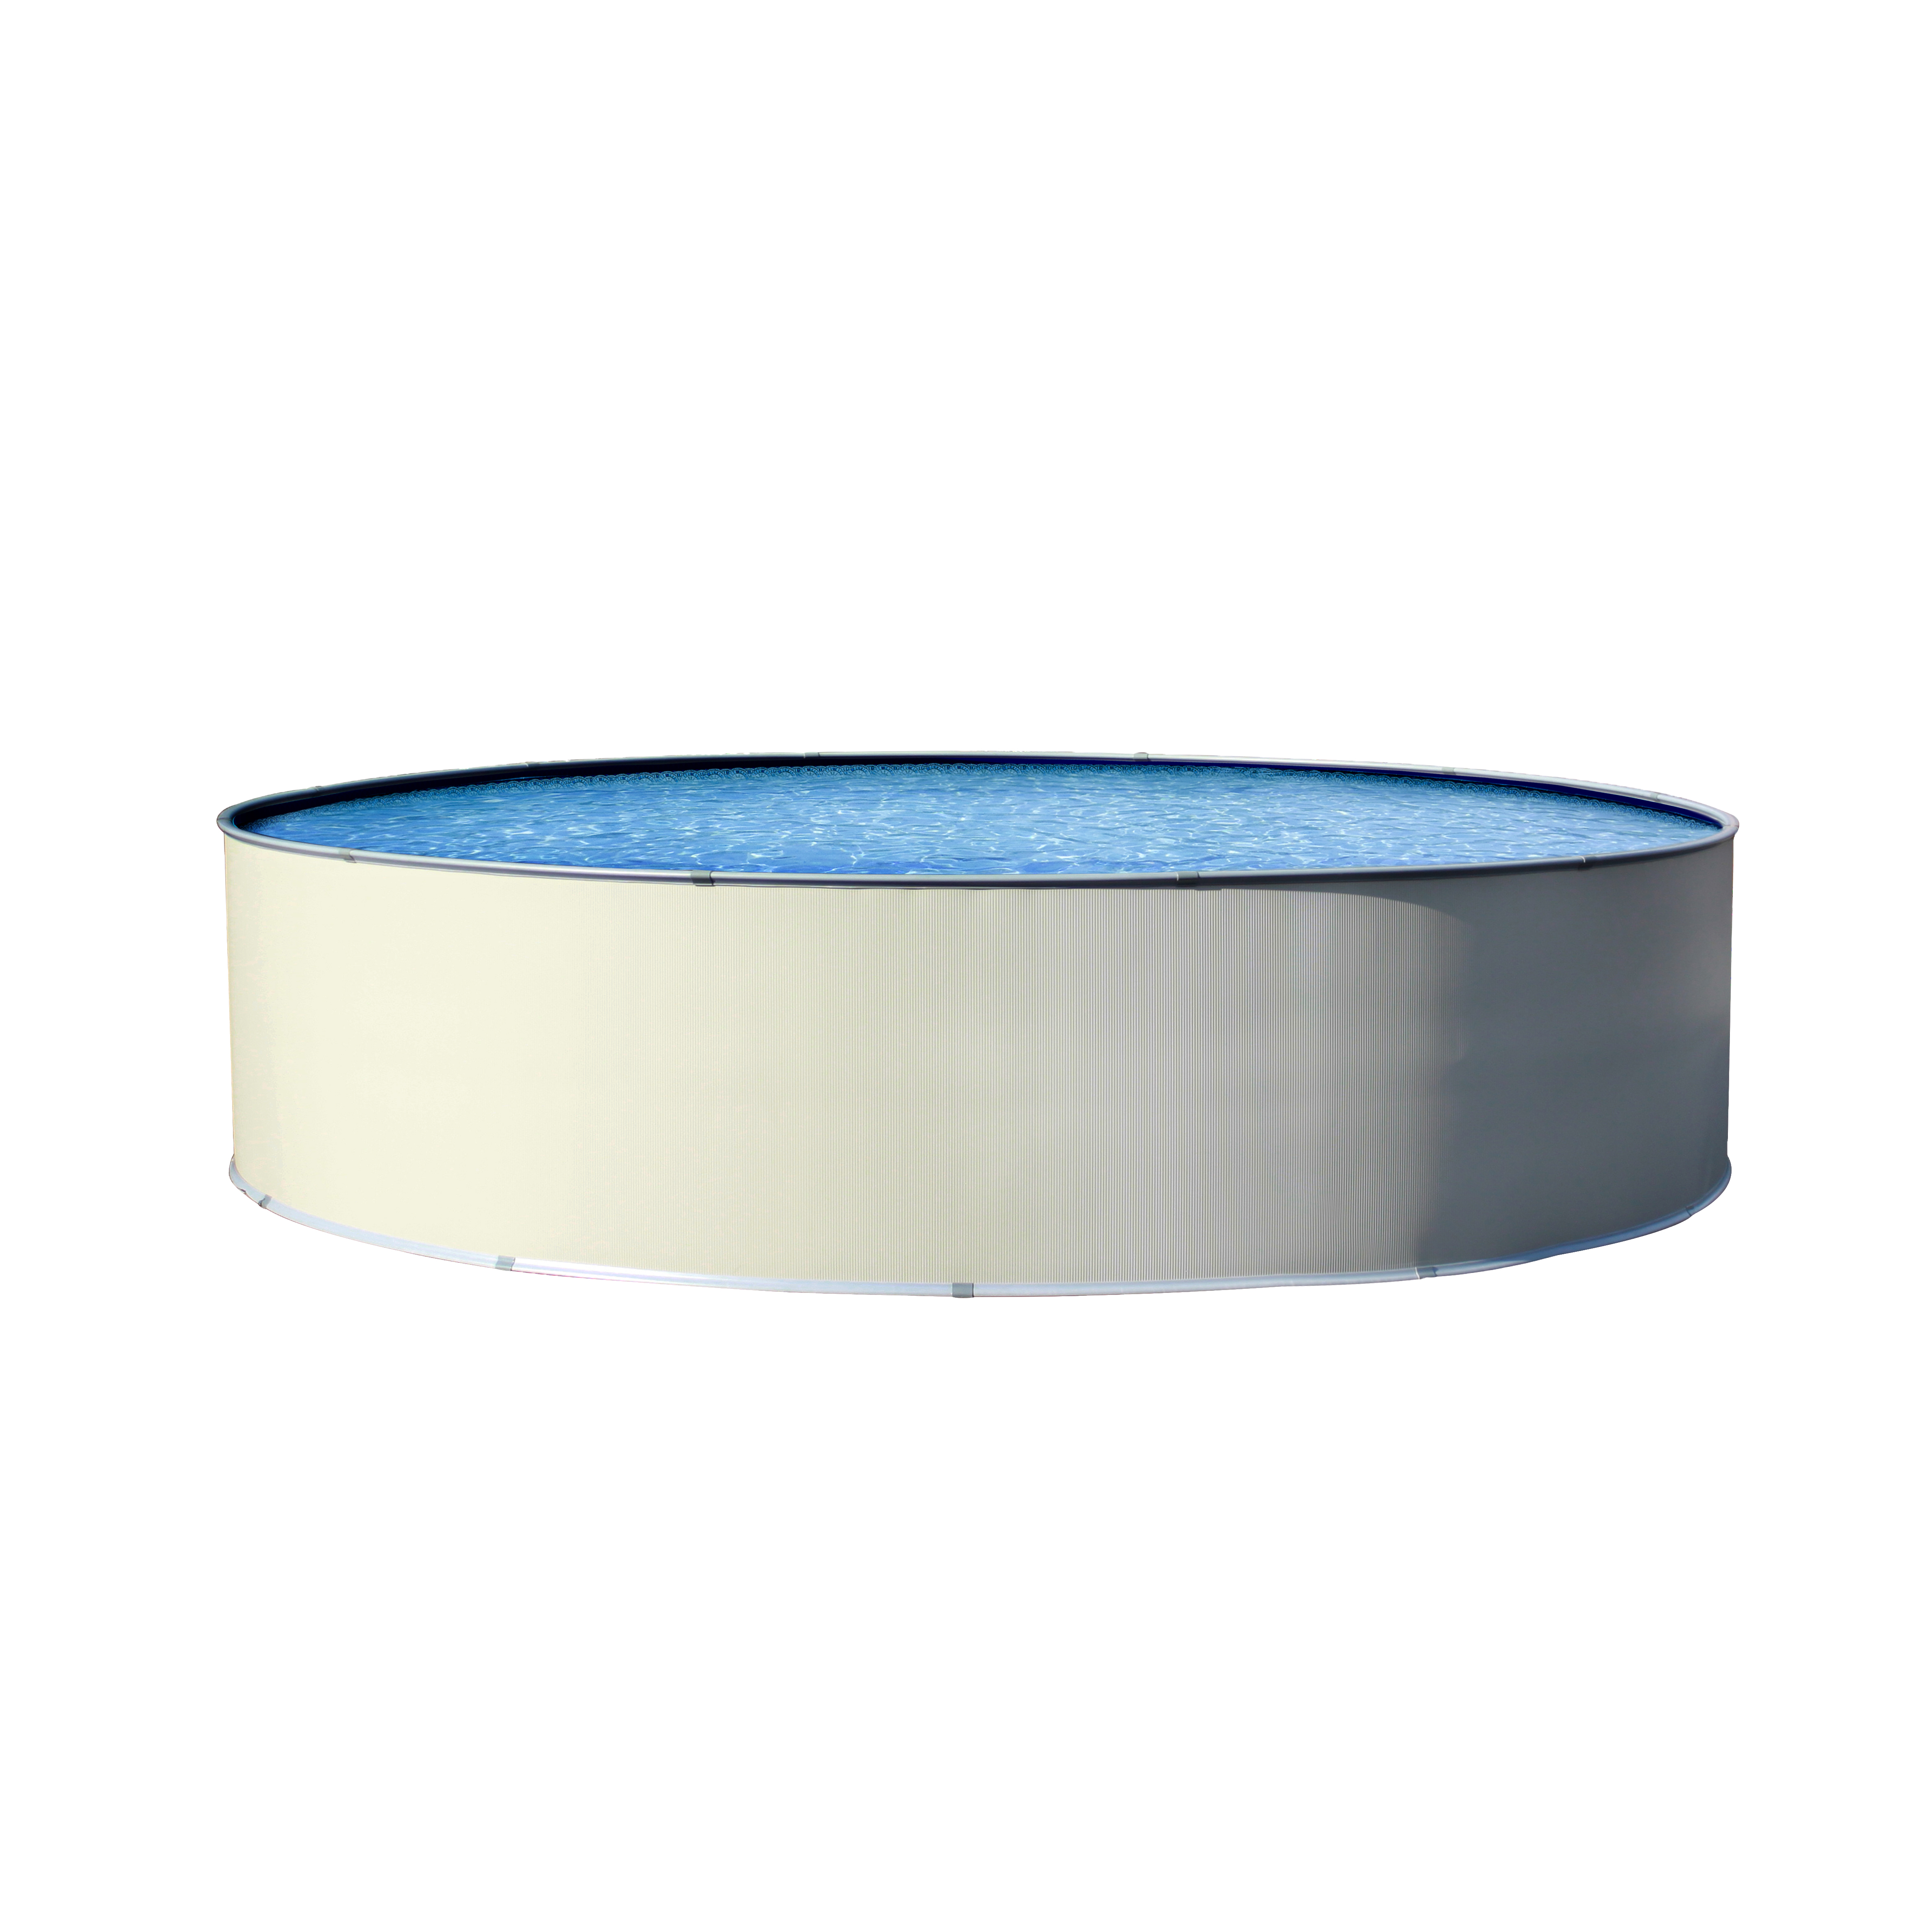 Pool kits above ground pools simplicity for Above ground pool kits